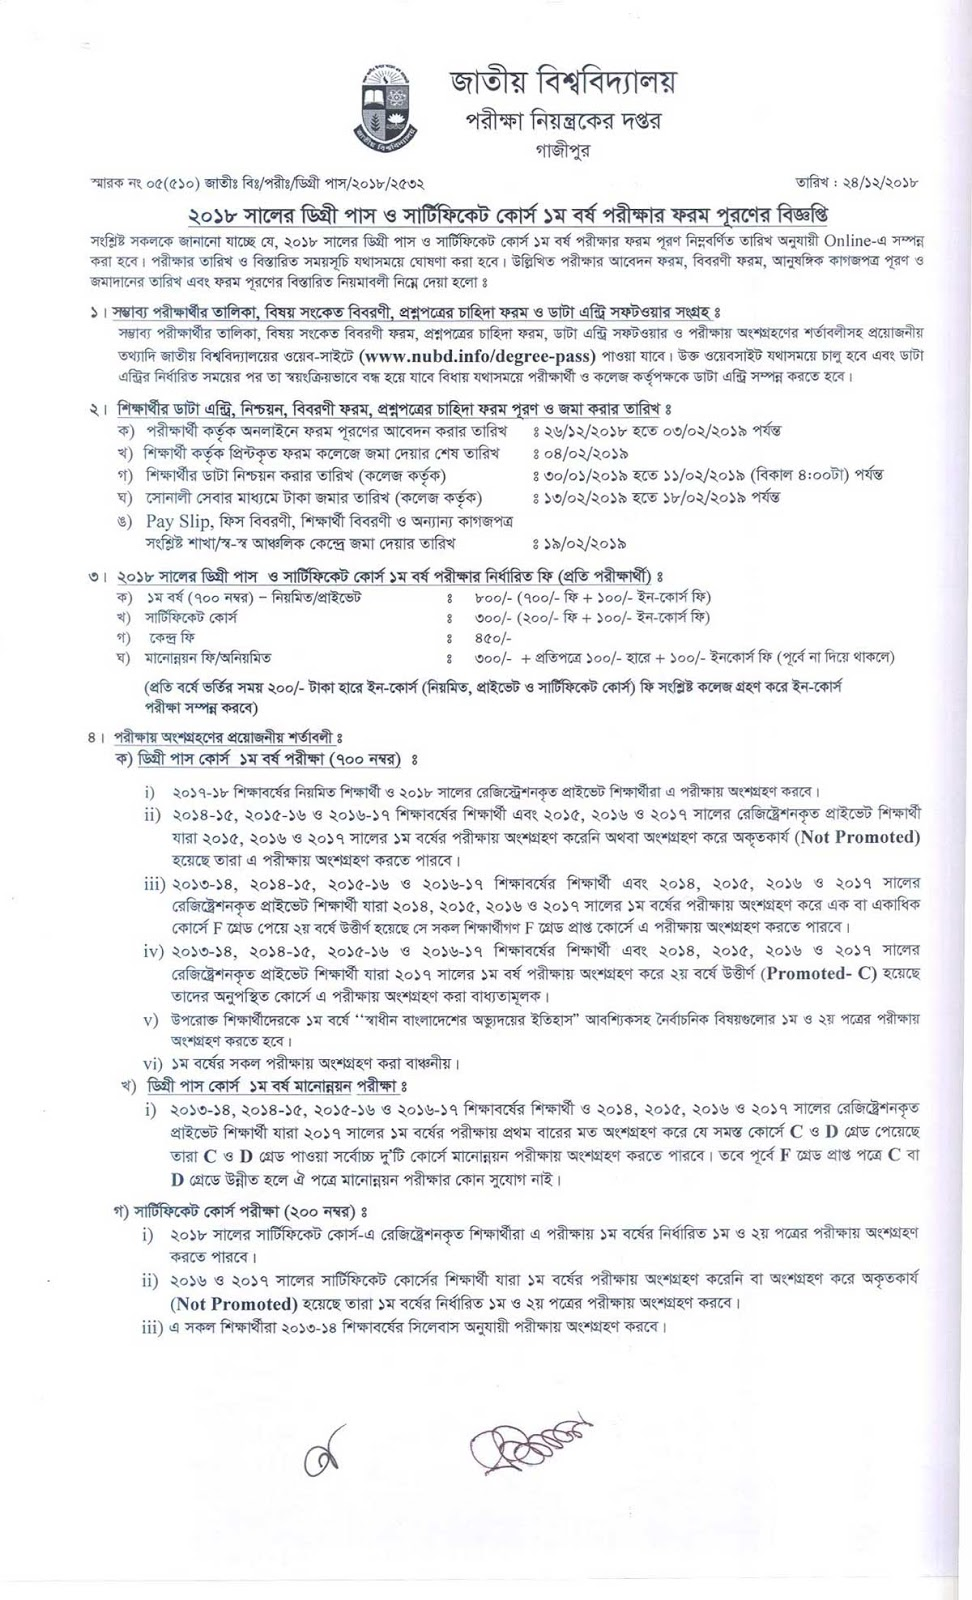 Degree 1st Year Form fill up Notice 2018